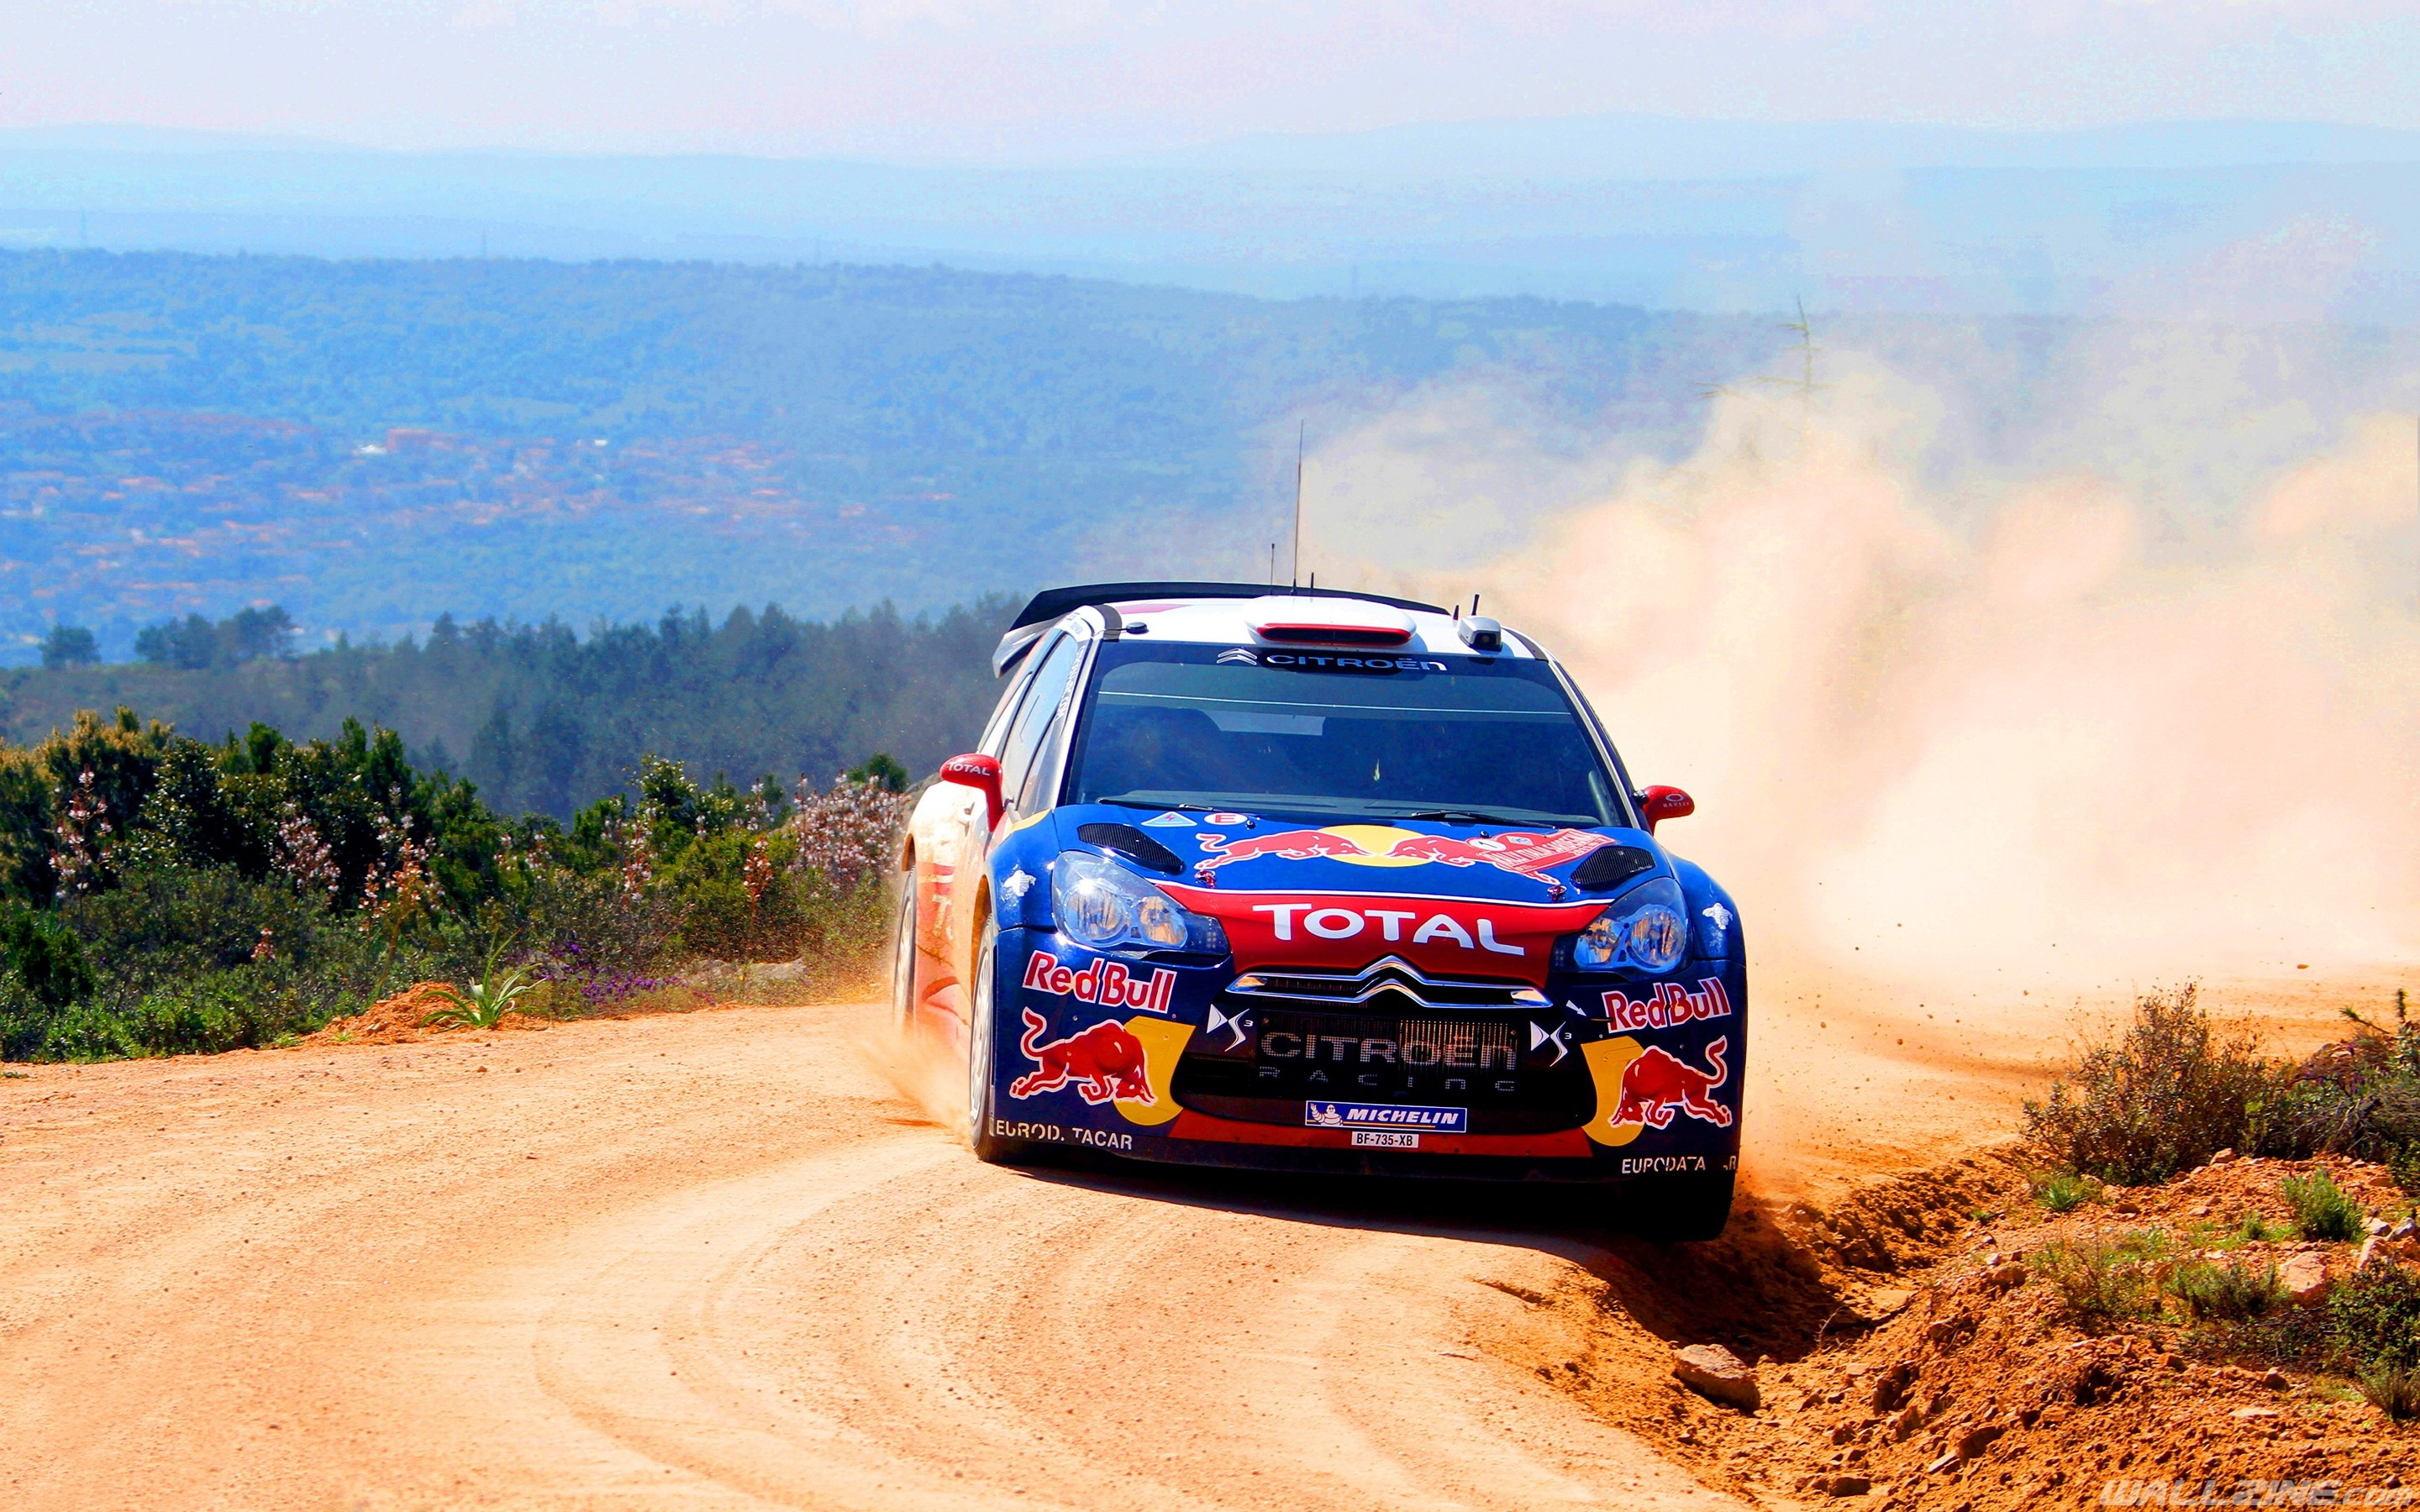 General 2880x1800 car Red Bull rally cars Rally Citroën Citroen DS3 vehicle